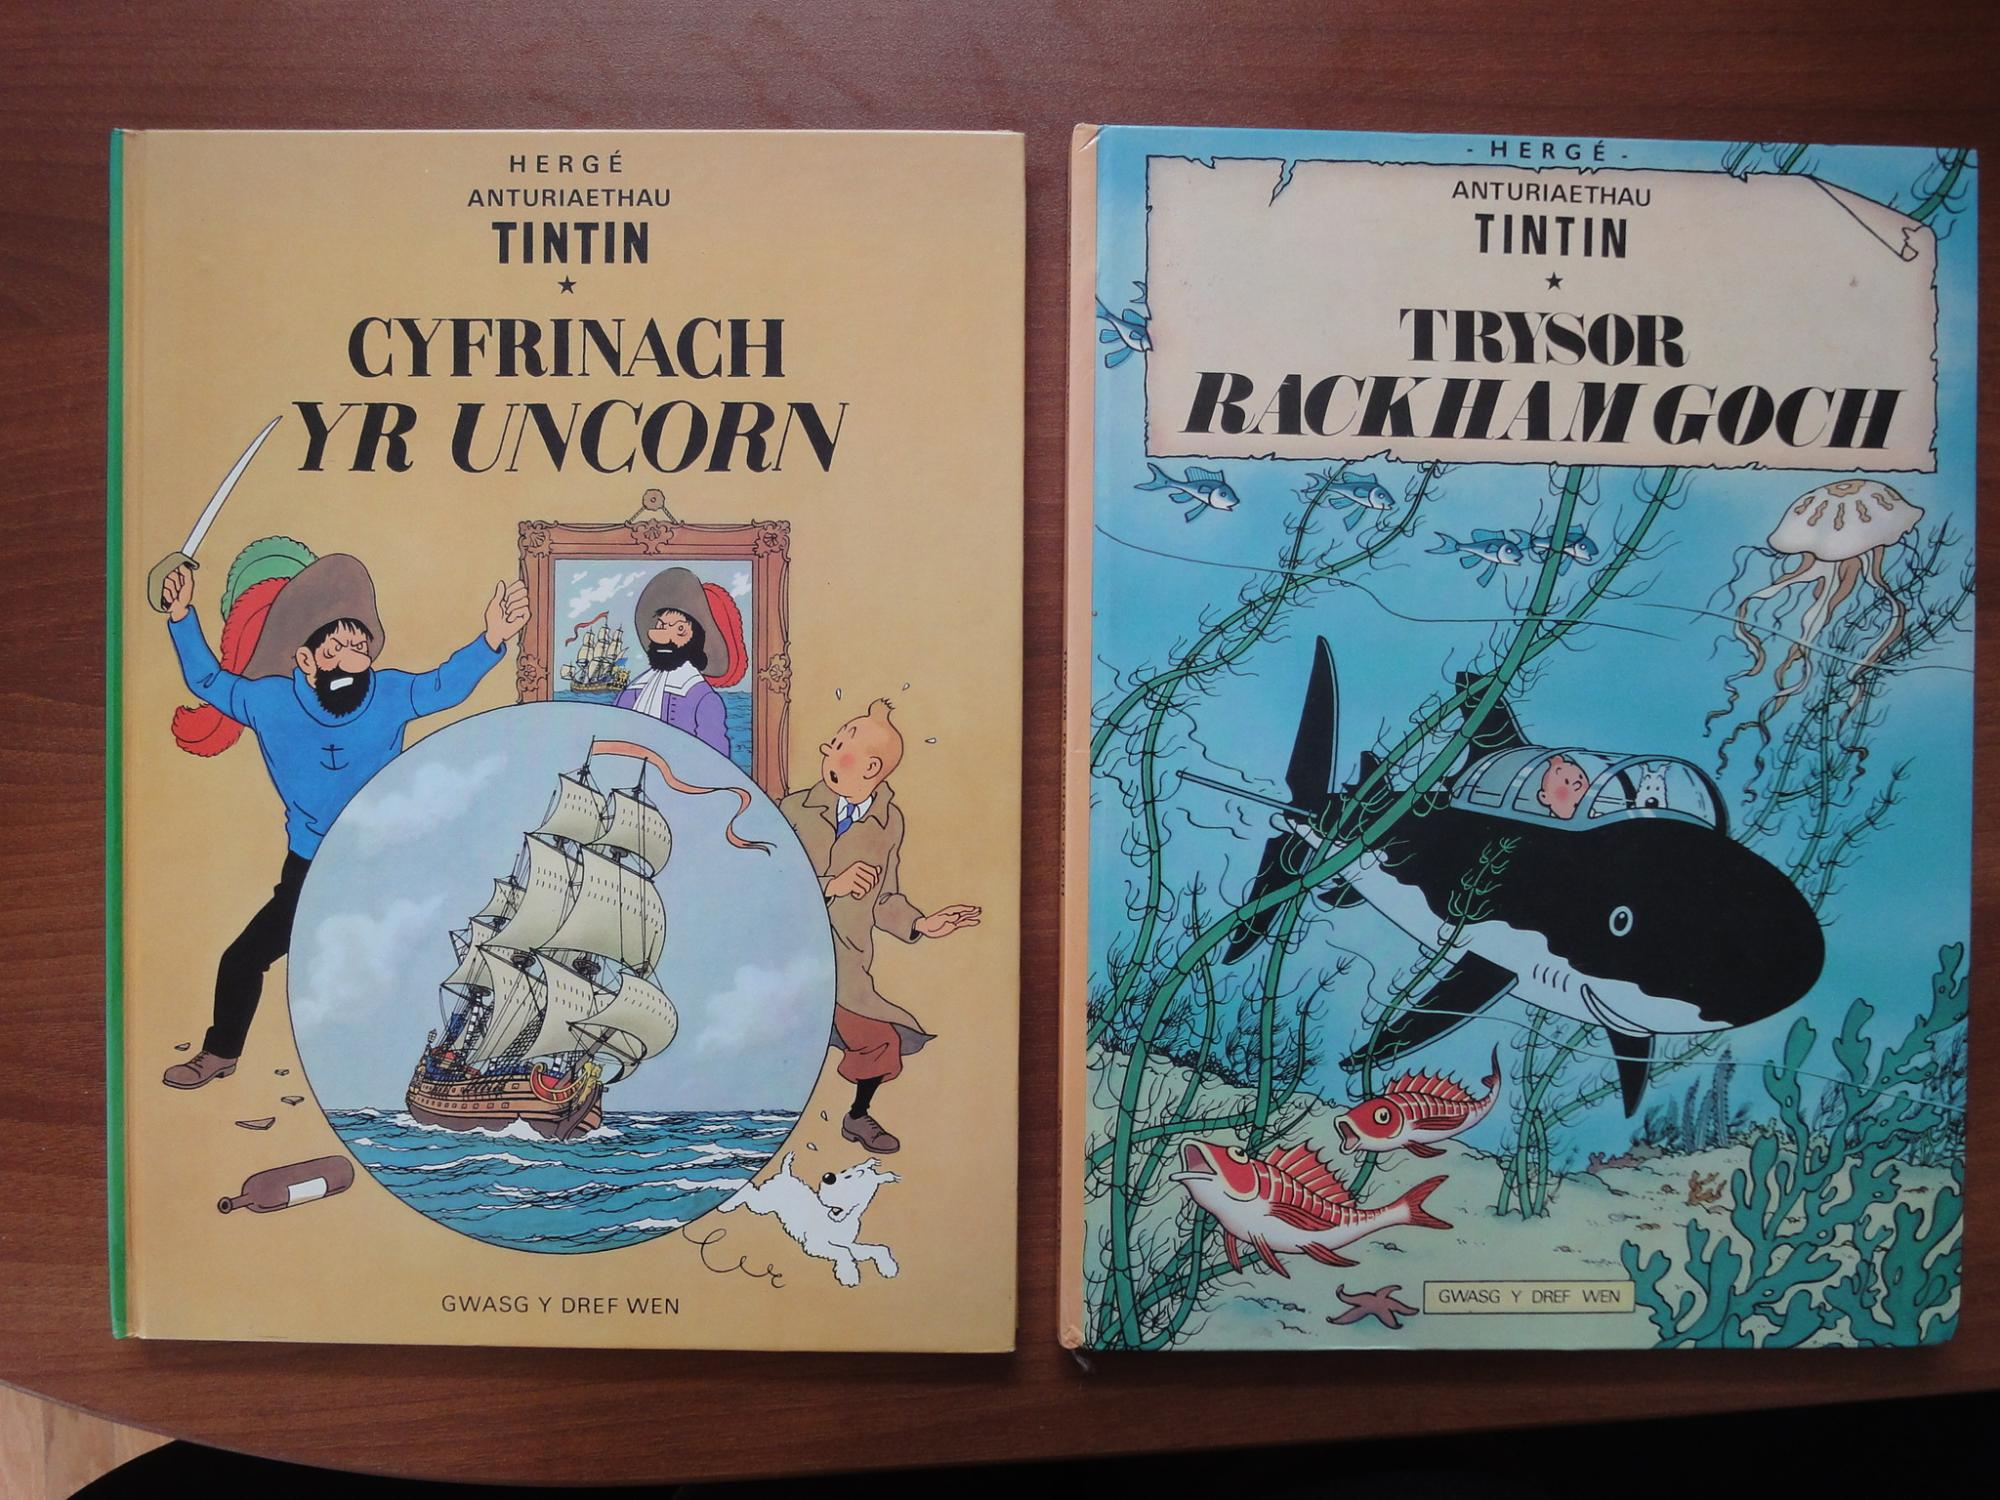 Set of 2 Tintin Books in Welsh (Wales): Cyfrinach Yr Uncorn (The Secret of the Unicorn), Trysor Rackham Goch (Red Rackham's Treasure) [Tintin Foreign